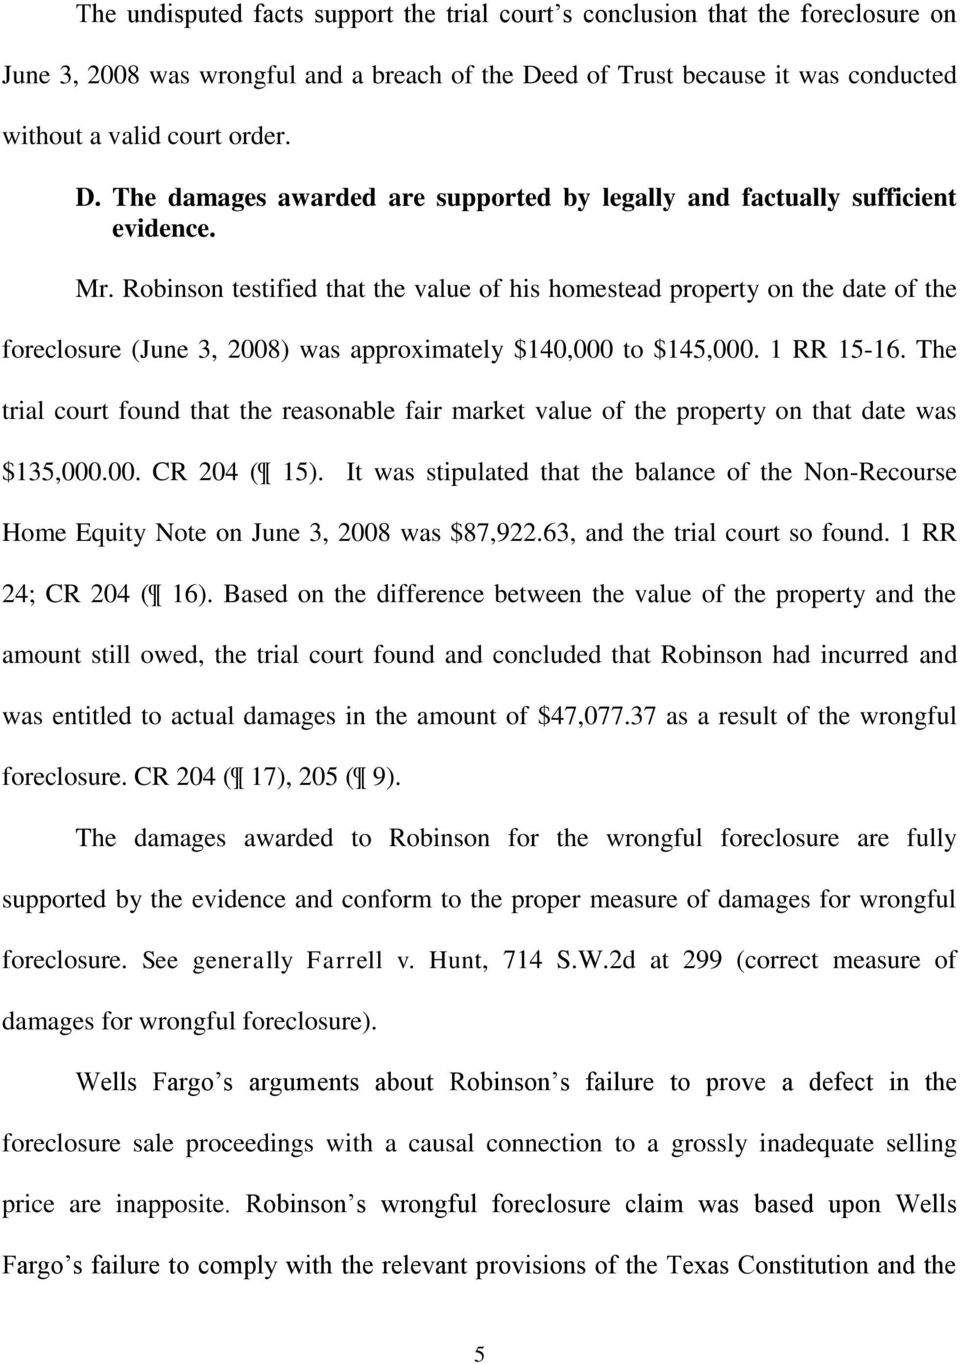 Robinson testified that the value of his homestead property on the date of the foreclosure (June 3, 2008) was approximately $140,000 to $145,000. 1 RR 15-16.